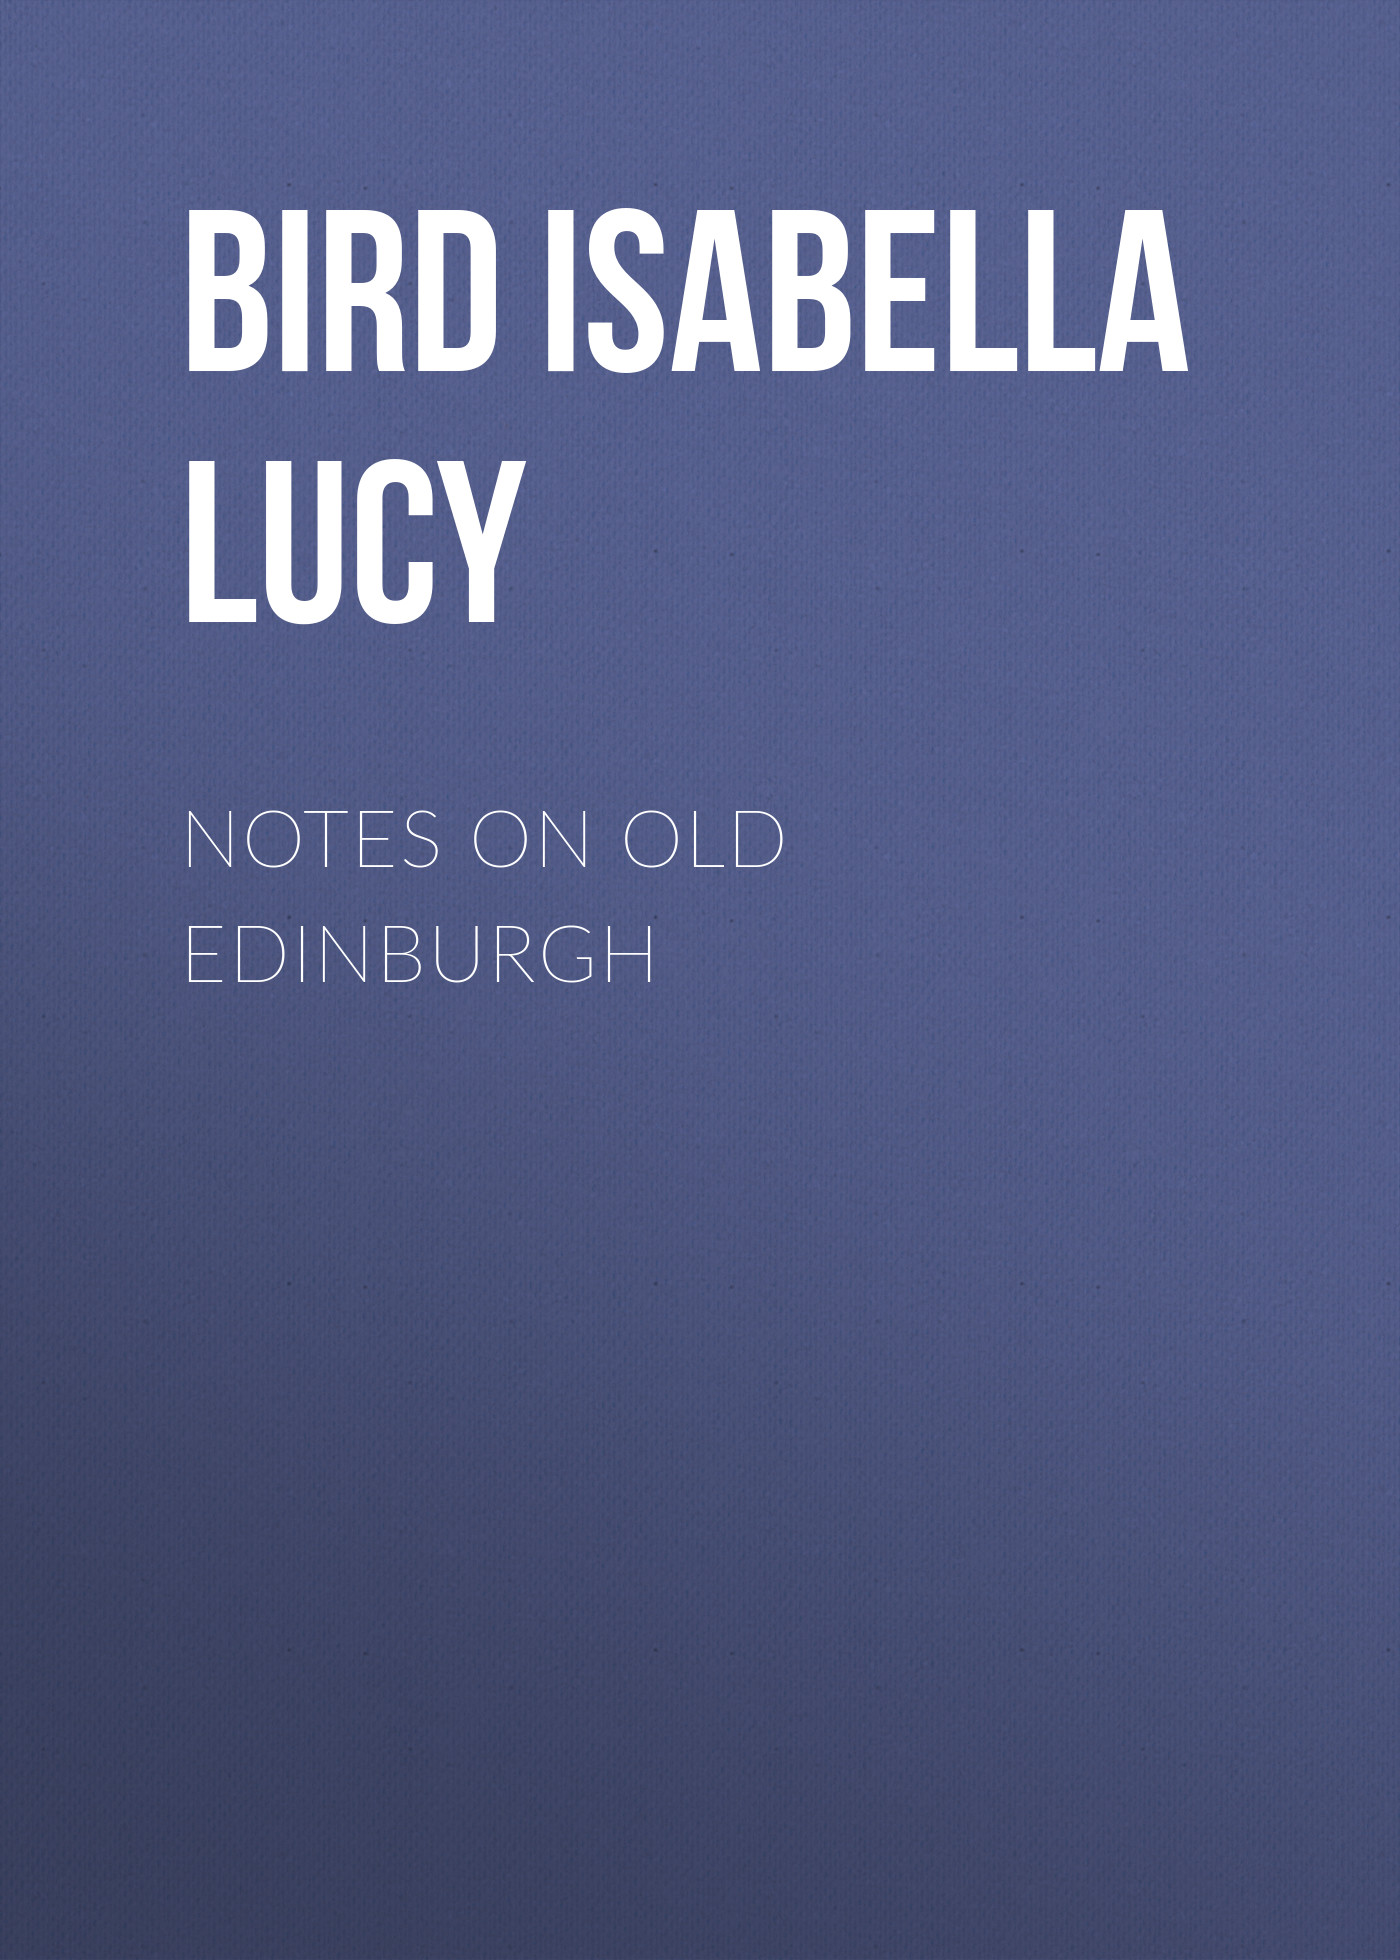 Bird Isabella Lucy Notes on Old Edinburgh notes on camp